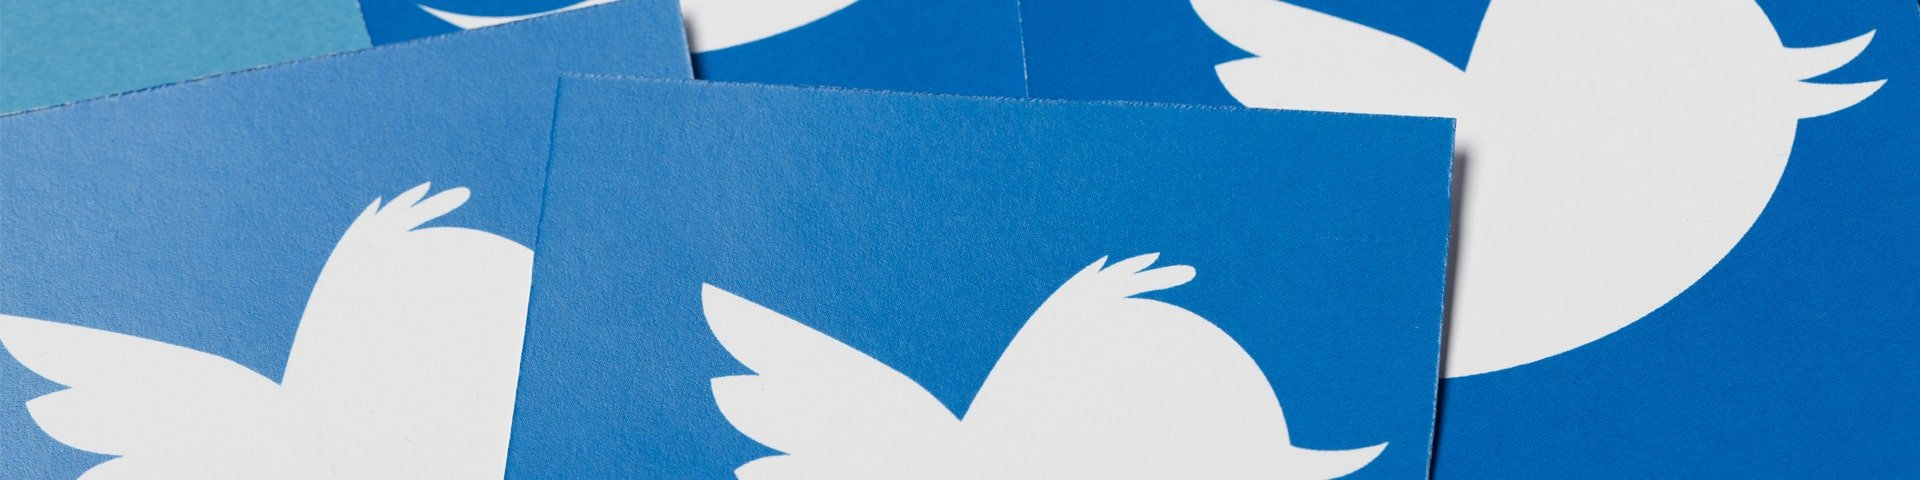 How to Use Twitter for Business in 2020